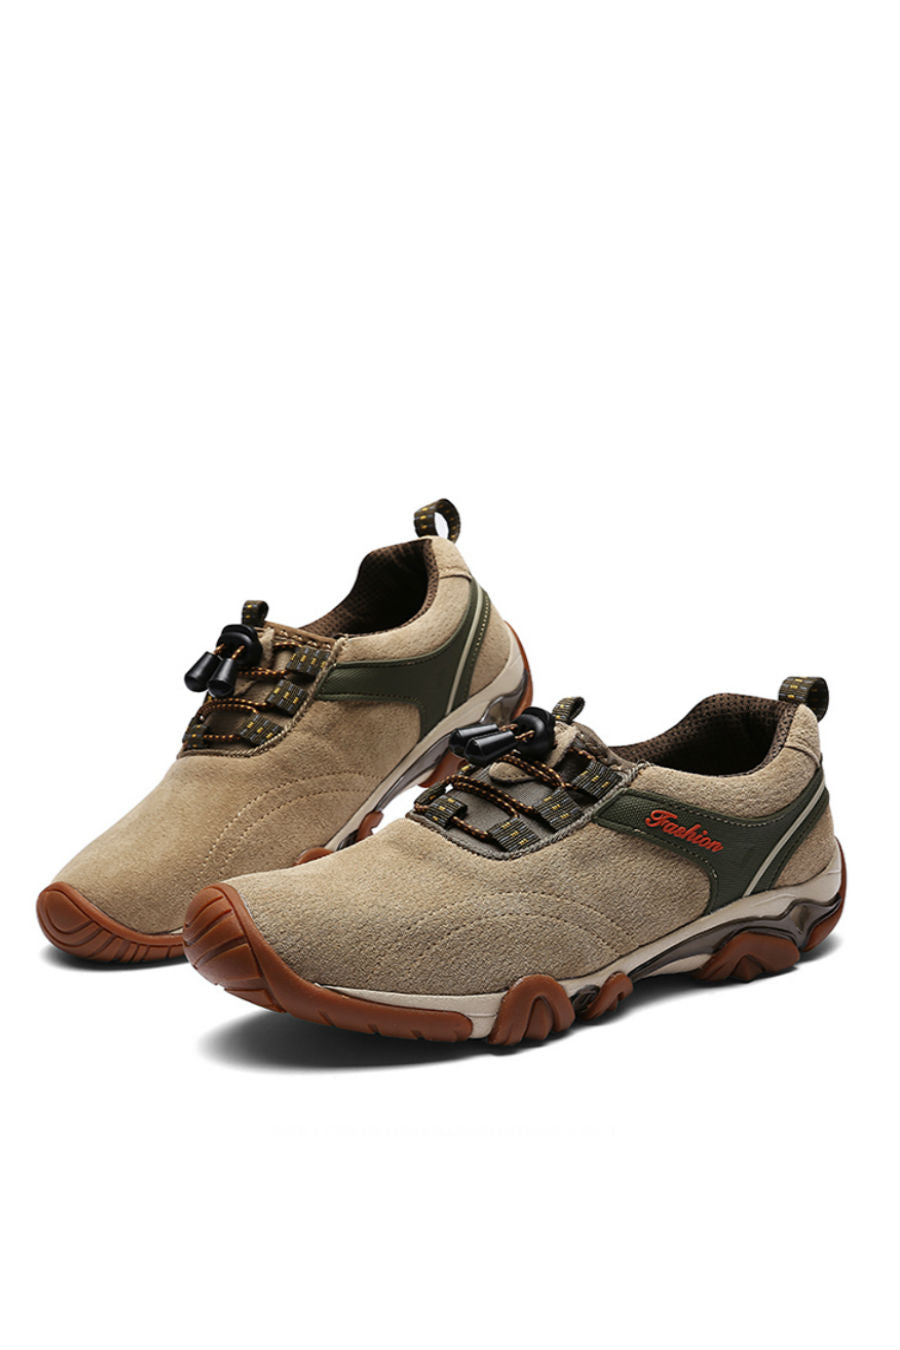 Sport Waterproof Trekking Shoes